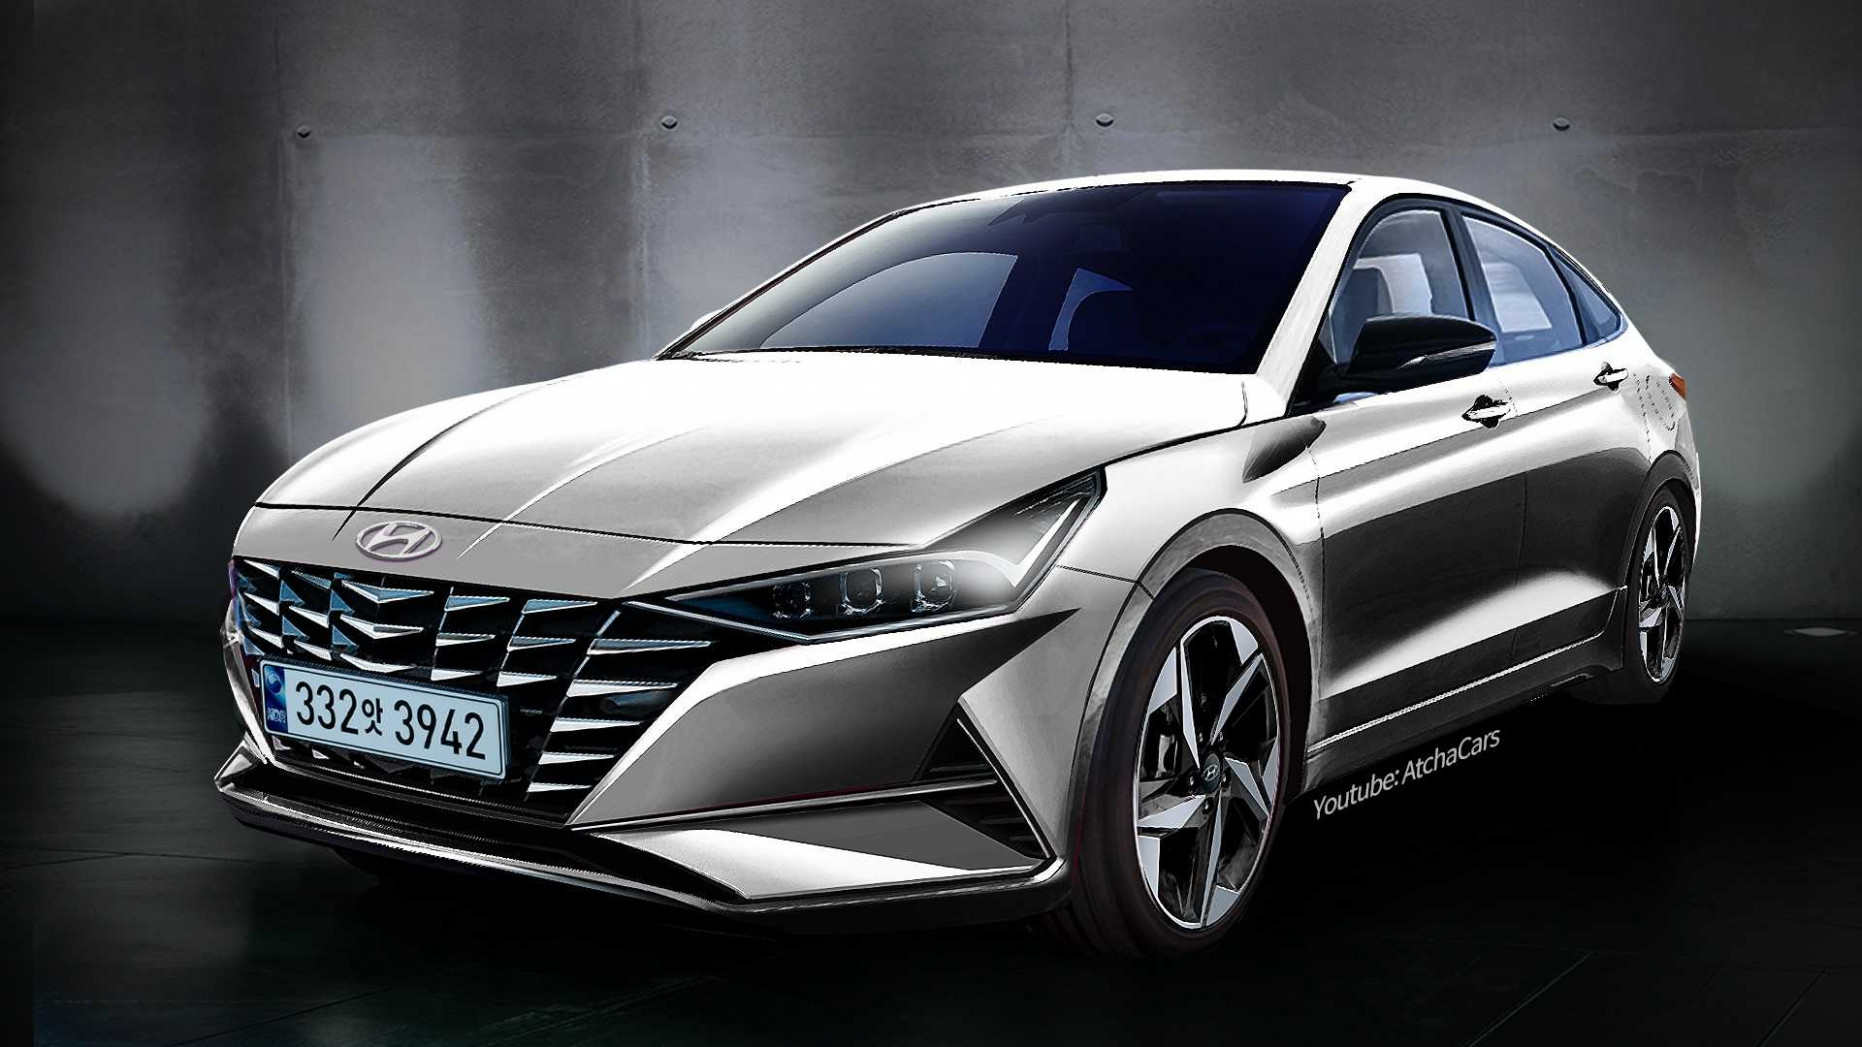 Reviews 2022 Hyundai Sonata Release Date